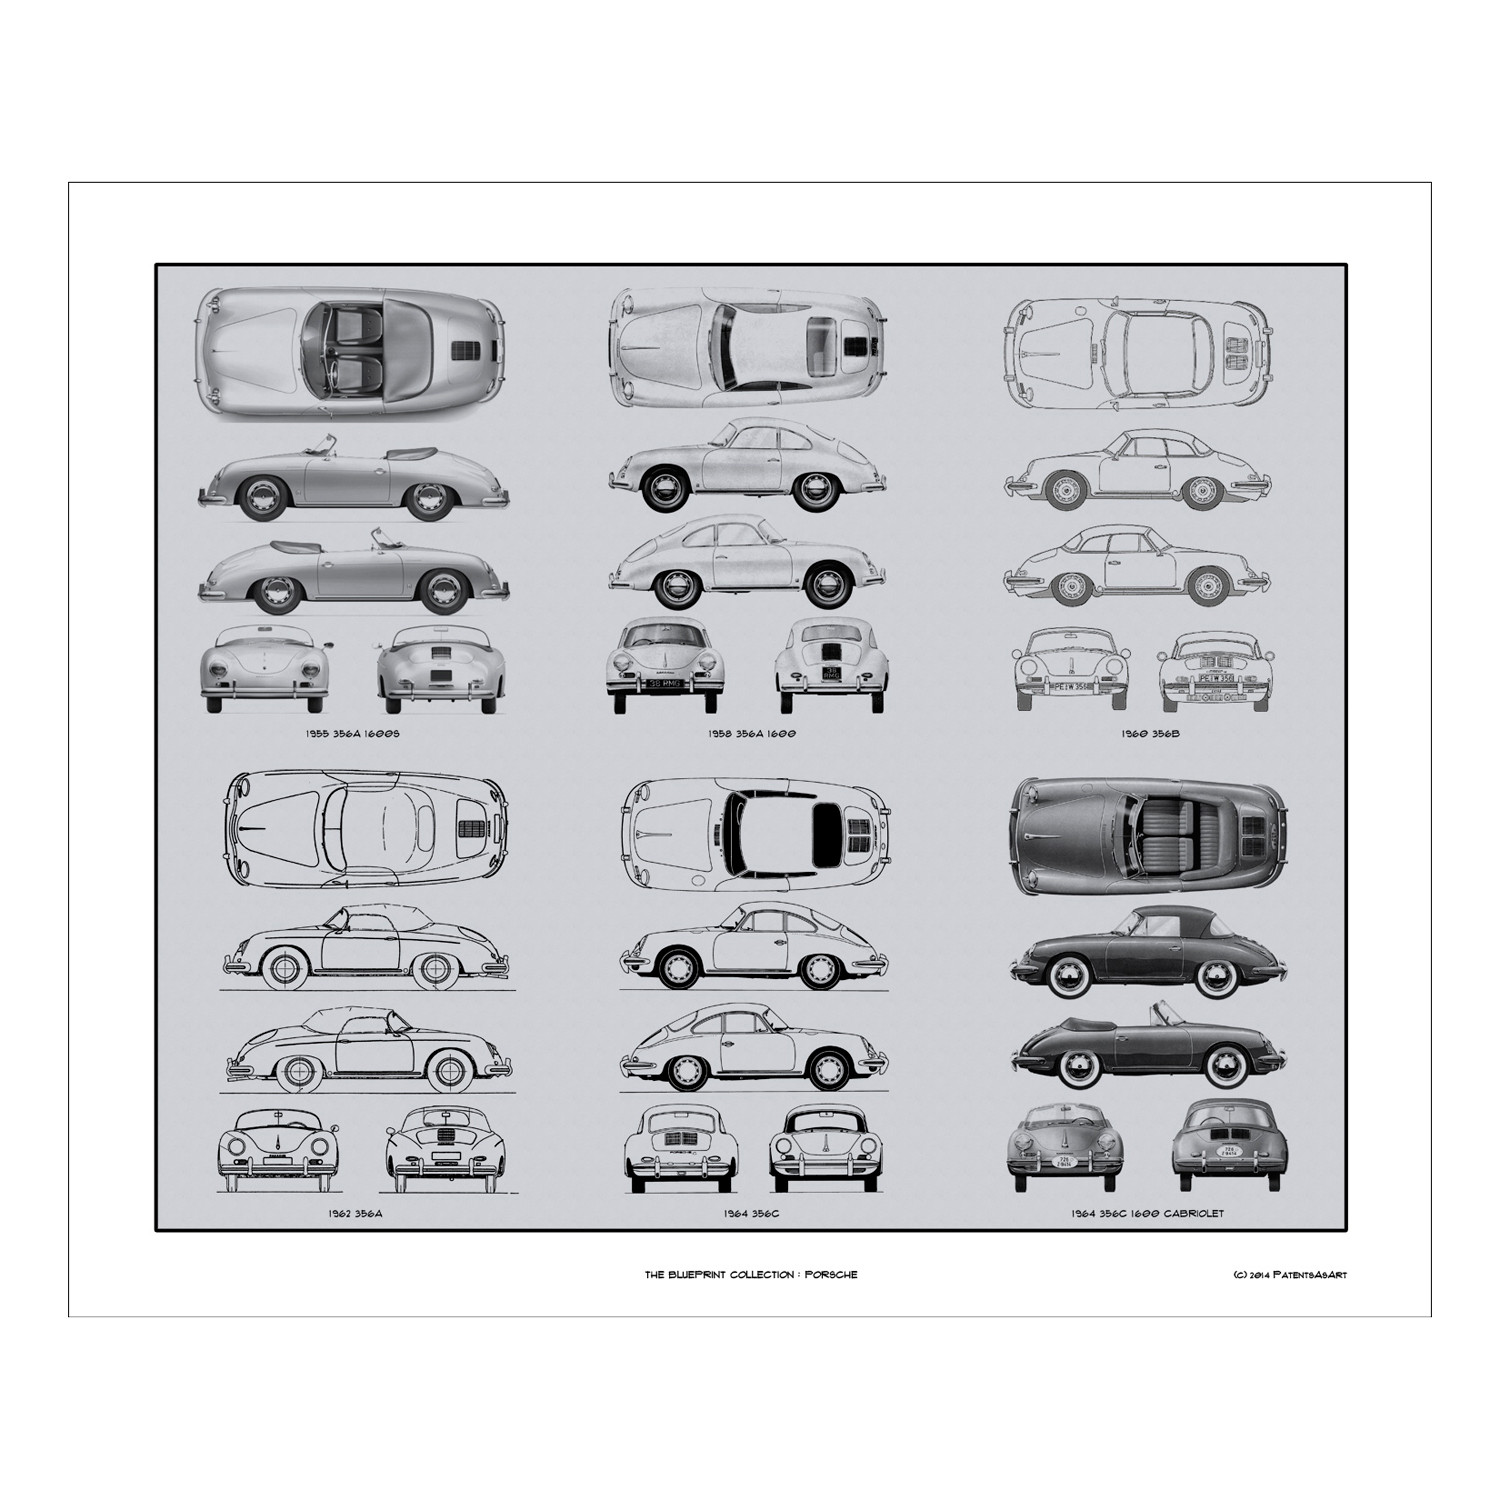 Porsche 356 blueprint collection concept products touch of modern porsche 356 blueprint collection malvernweather Choice Image